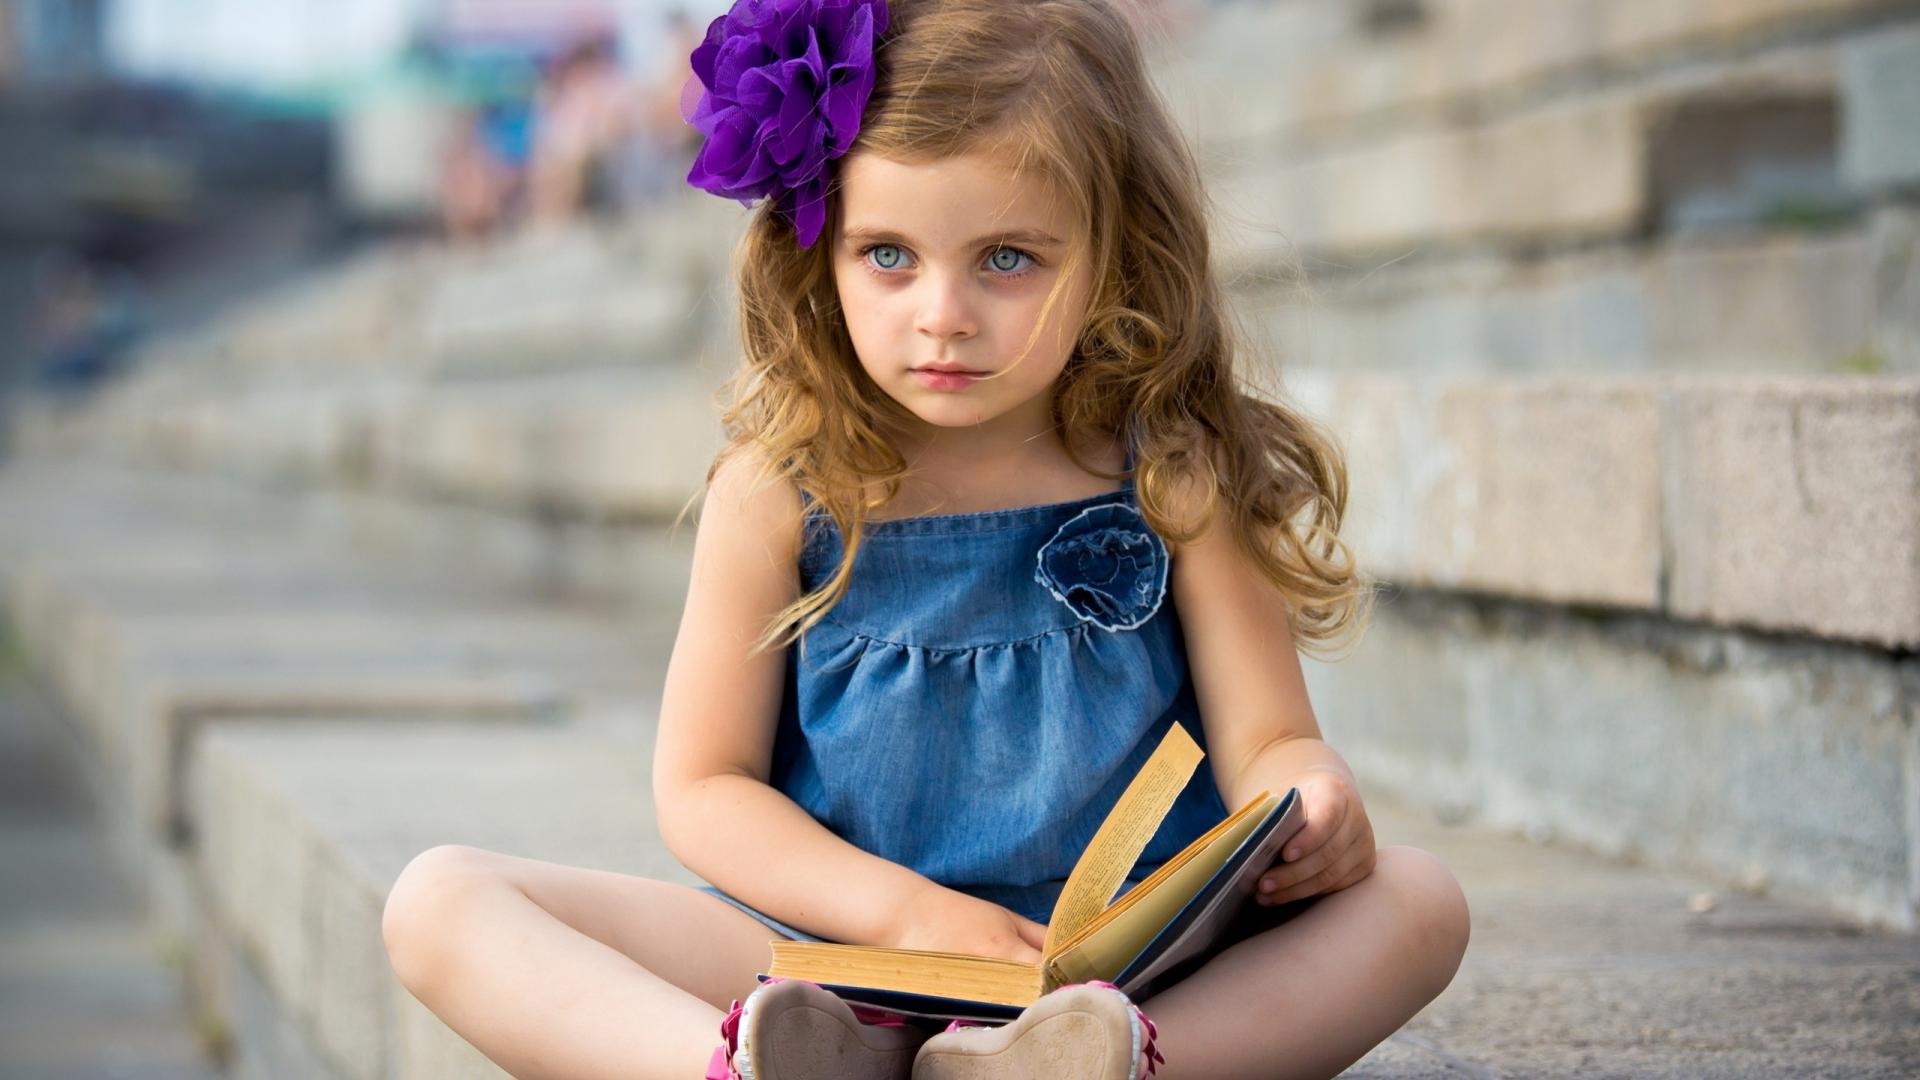 Cute Baby Girl Pictures Wallpapers: Cute Baby Girl Mood Book Child Wallpaper